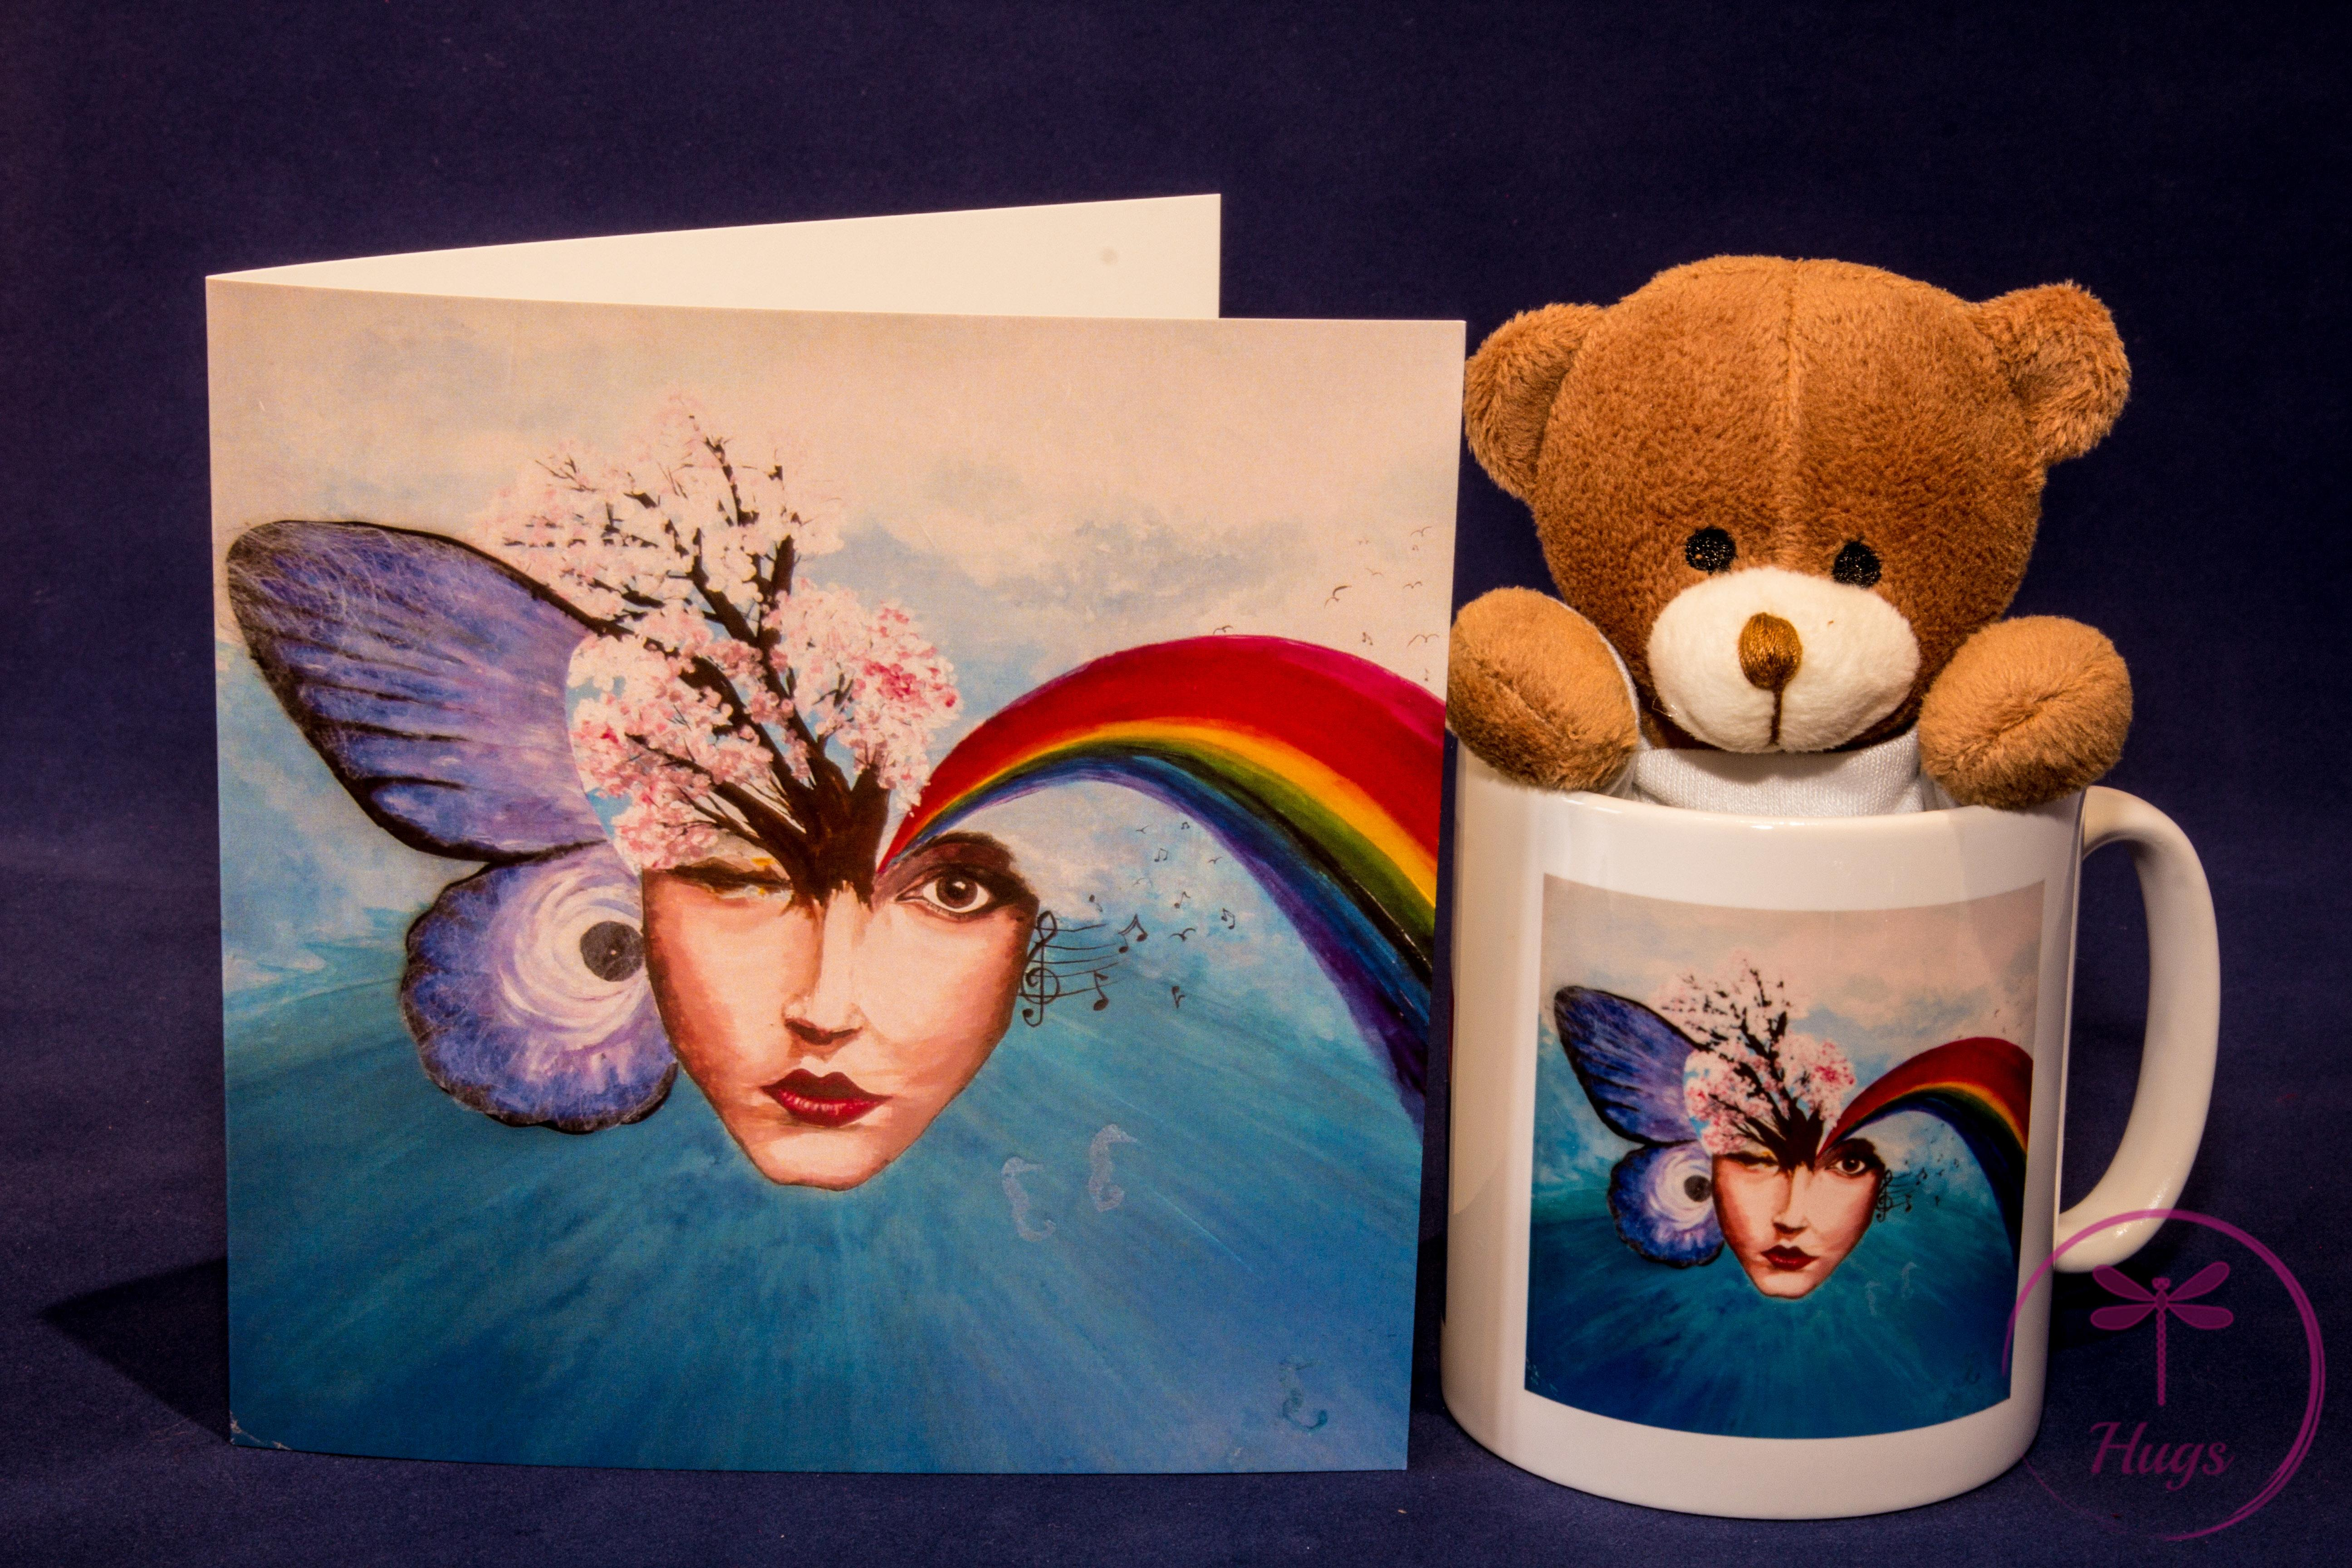 Empyreal Mug, Card and Branded Bear